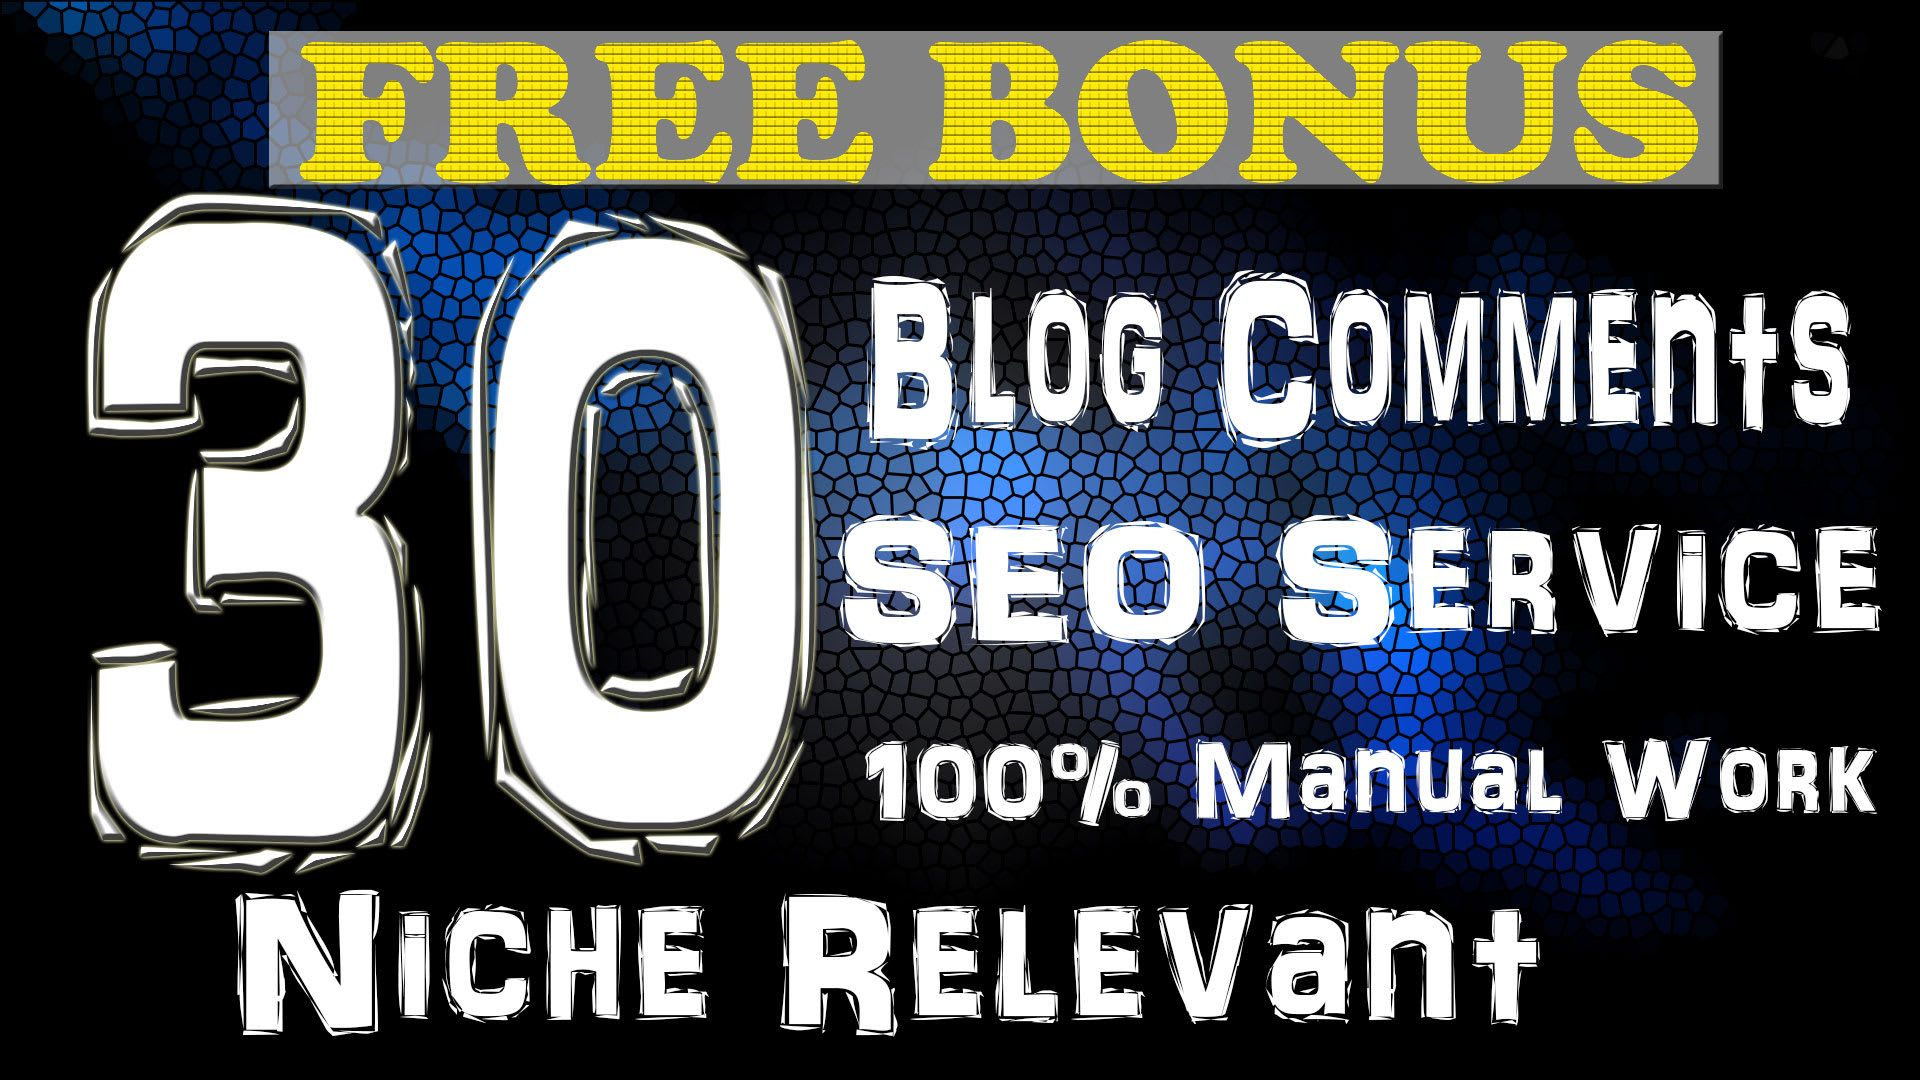 Provide 30 Niche Related Blog Comments Backlinks TO Improve Rankings